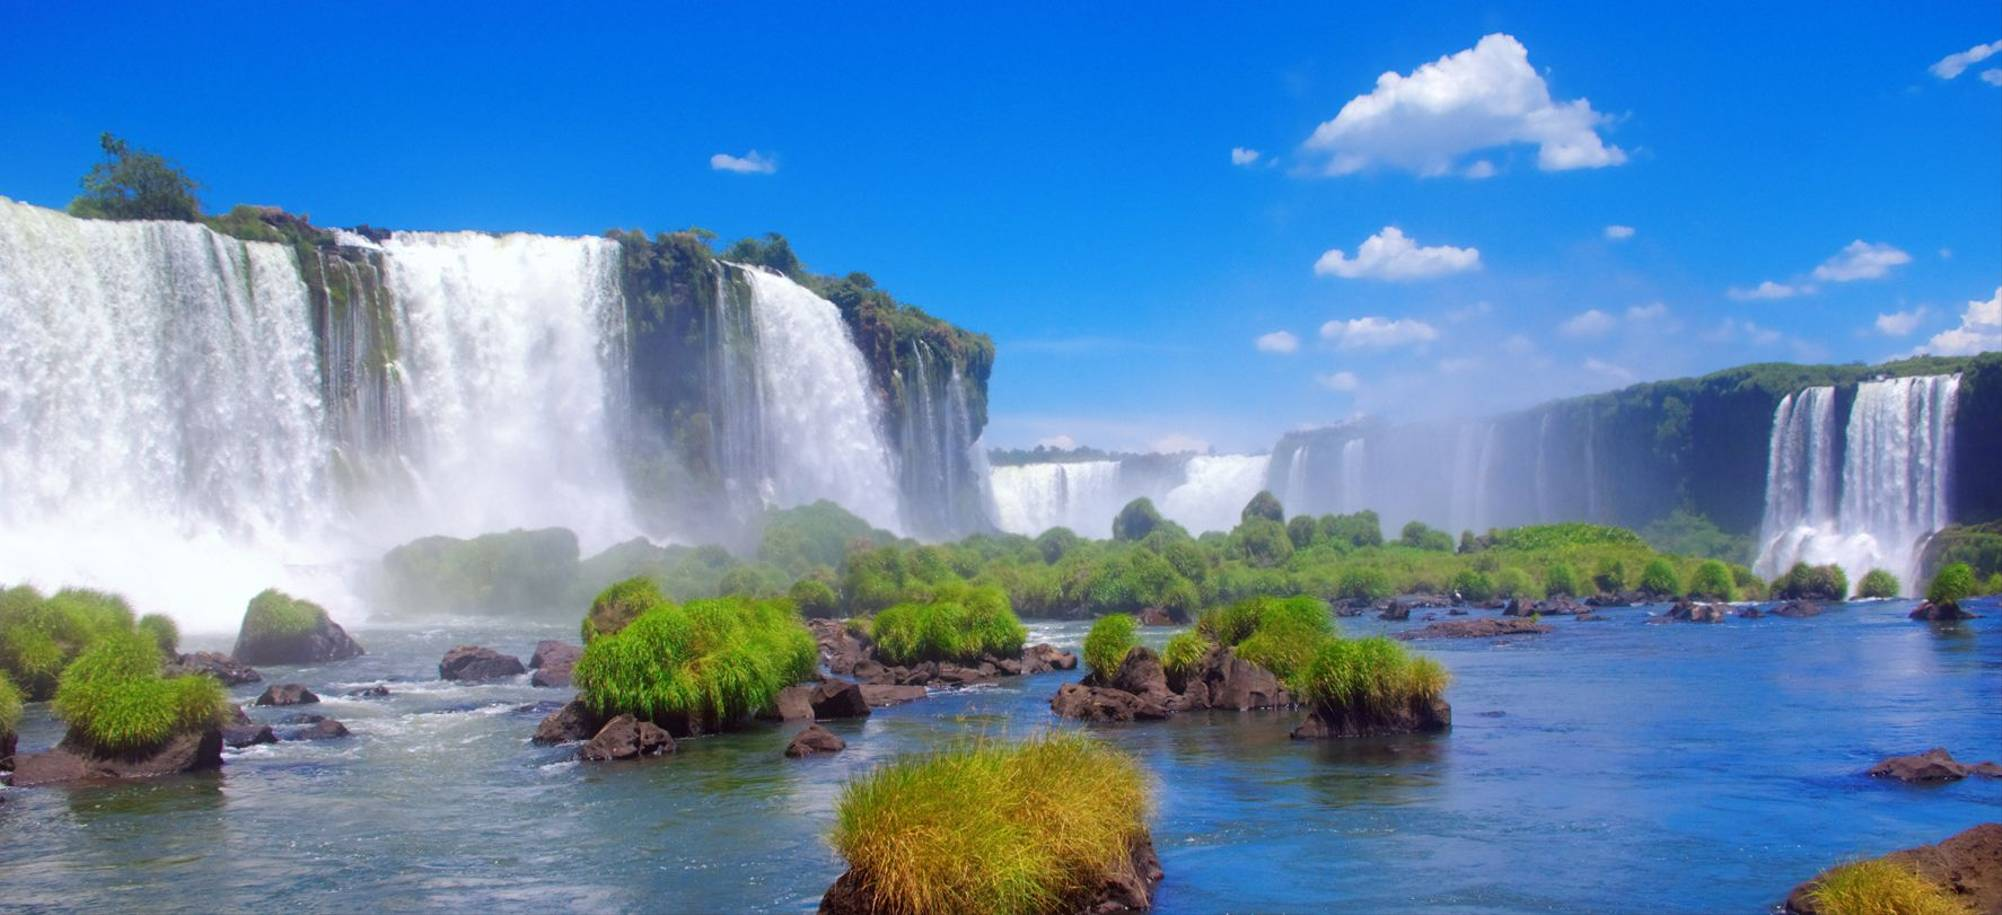 23 Day - Iguazu Falls - Brazilian side - Itinerary Desktop.jpg